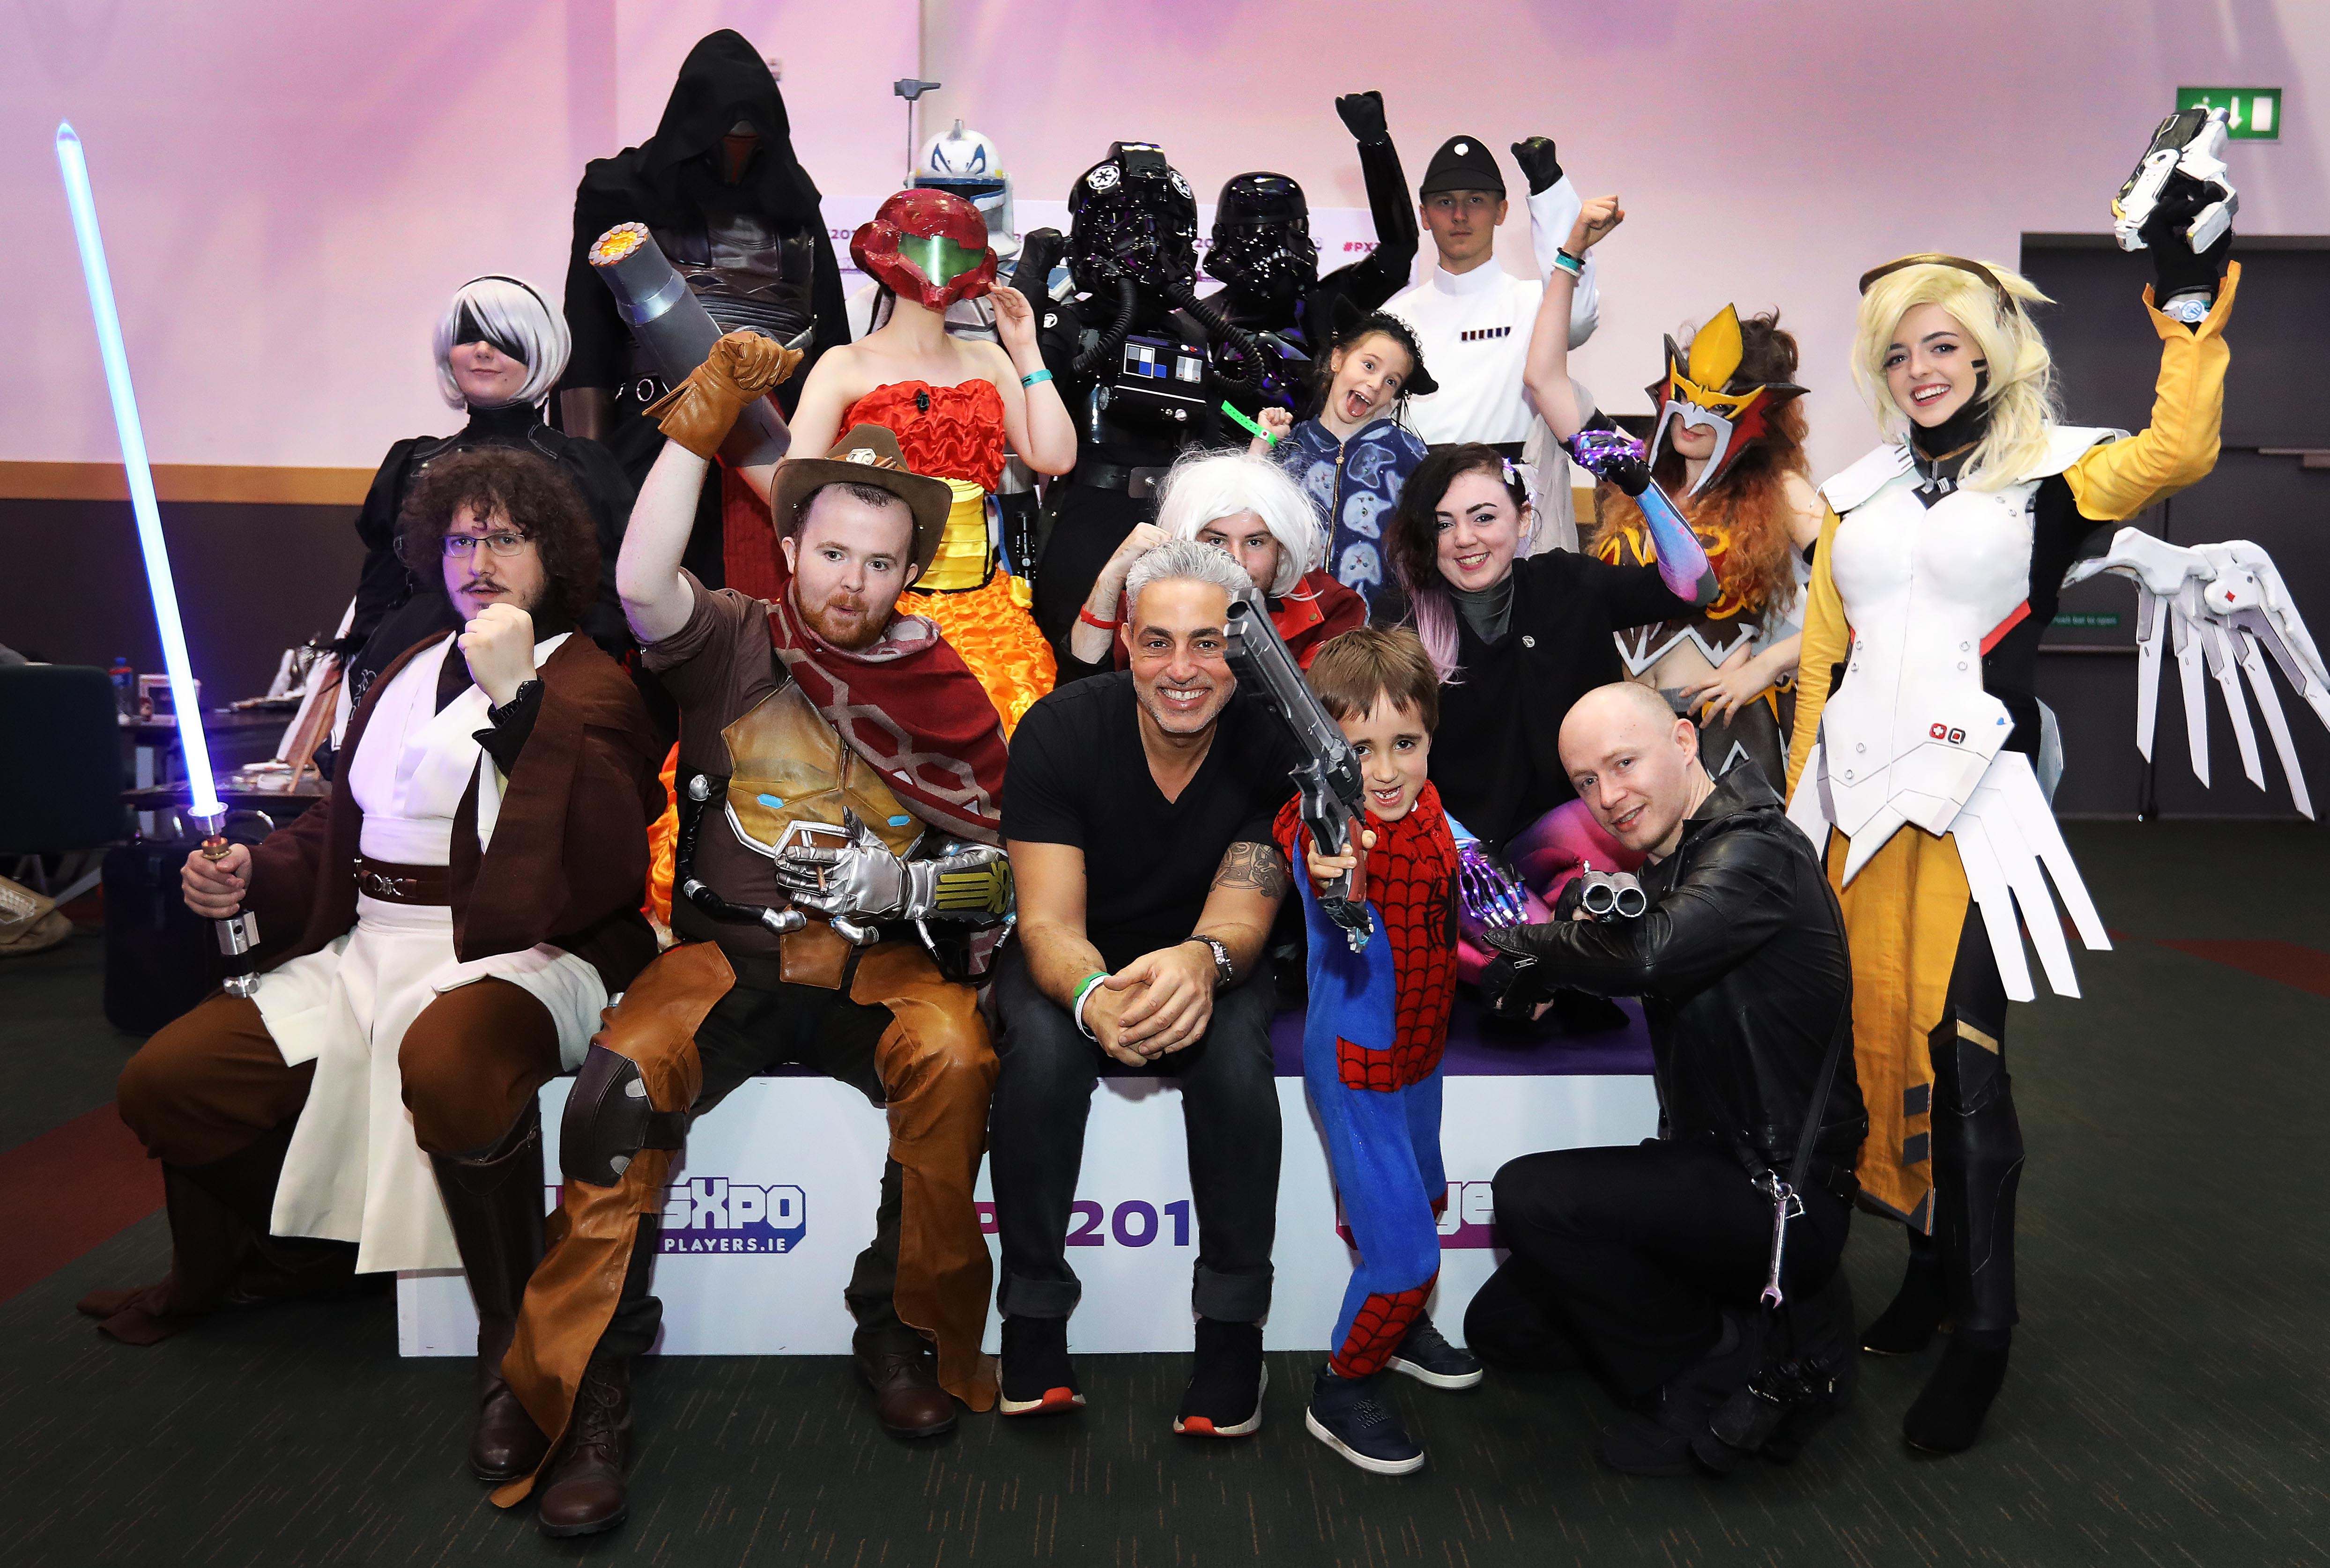 Baz Ashmawy pictured with competitors in the Cosplay competition at PlayersXpo, Ireland's Ultimate Gaming event in The Convention Centre in Dublin over the weekend. With a show-stopping line-up of top International acts and gaming industry legends, fans from all over the country flocked to meet their heroes and get hands-on with some of this year's most anticipated video games!